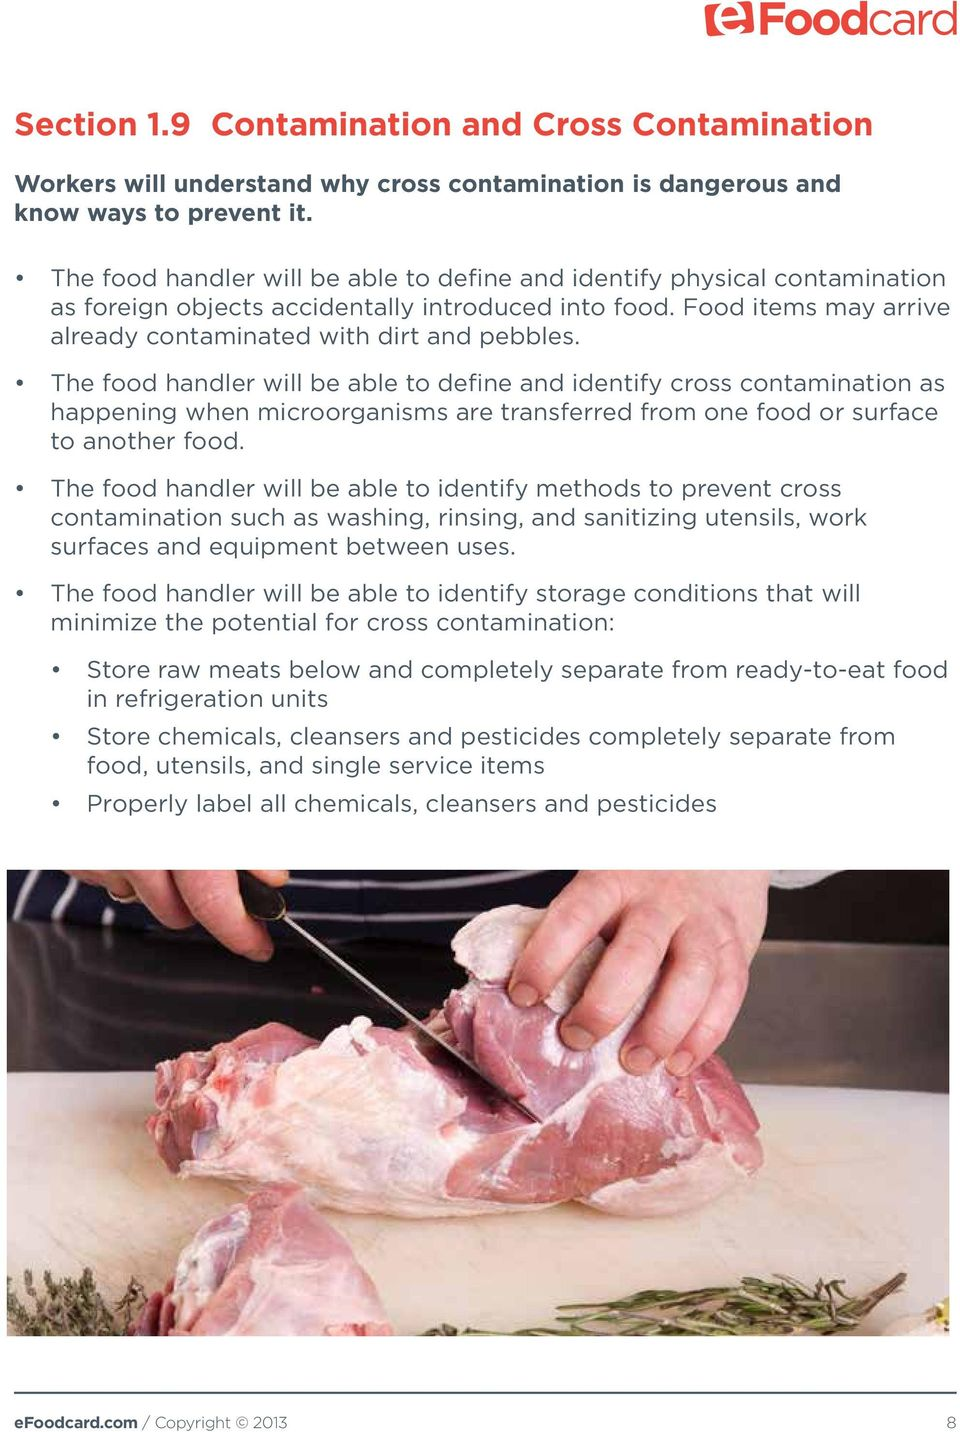 The food handler will be able to define and identify cross contamination as happening when microorganisms are transferred from one food or surface to another food.